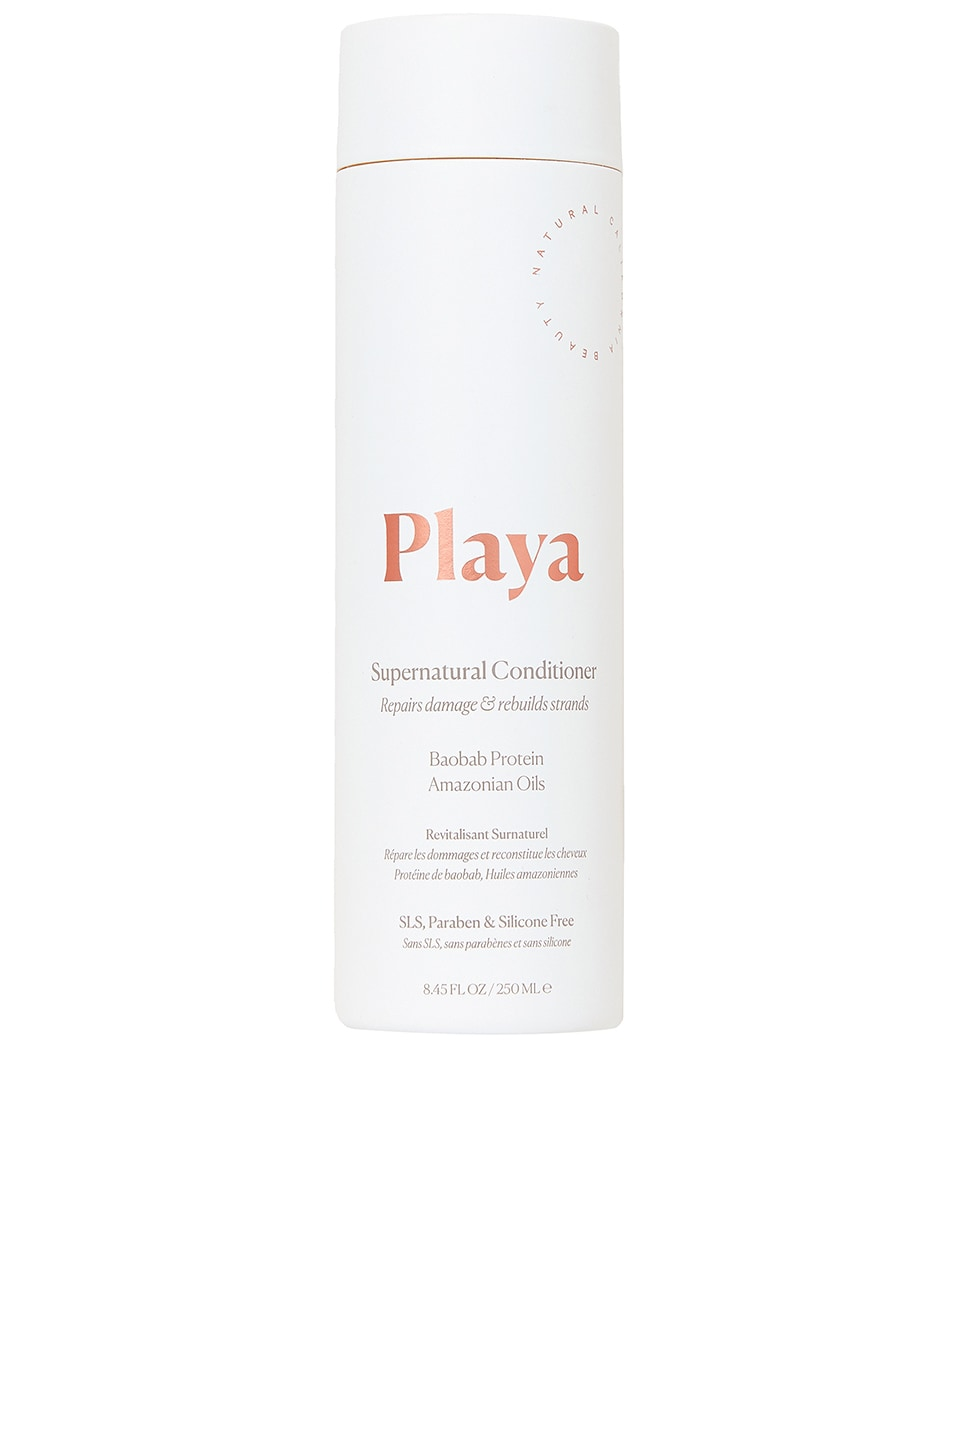 Playa Supernatural Conditioner